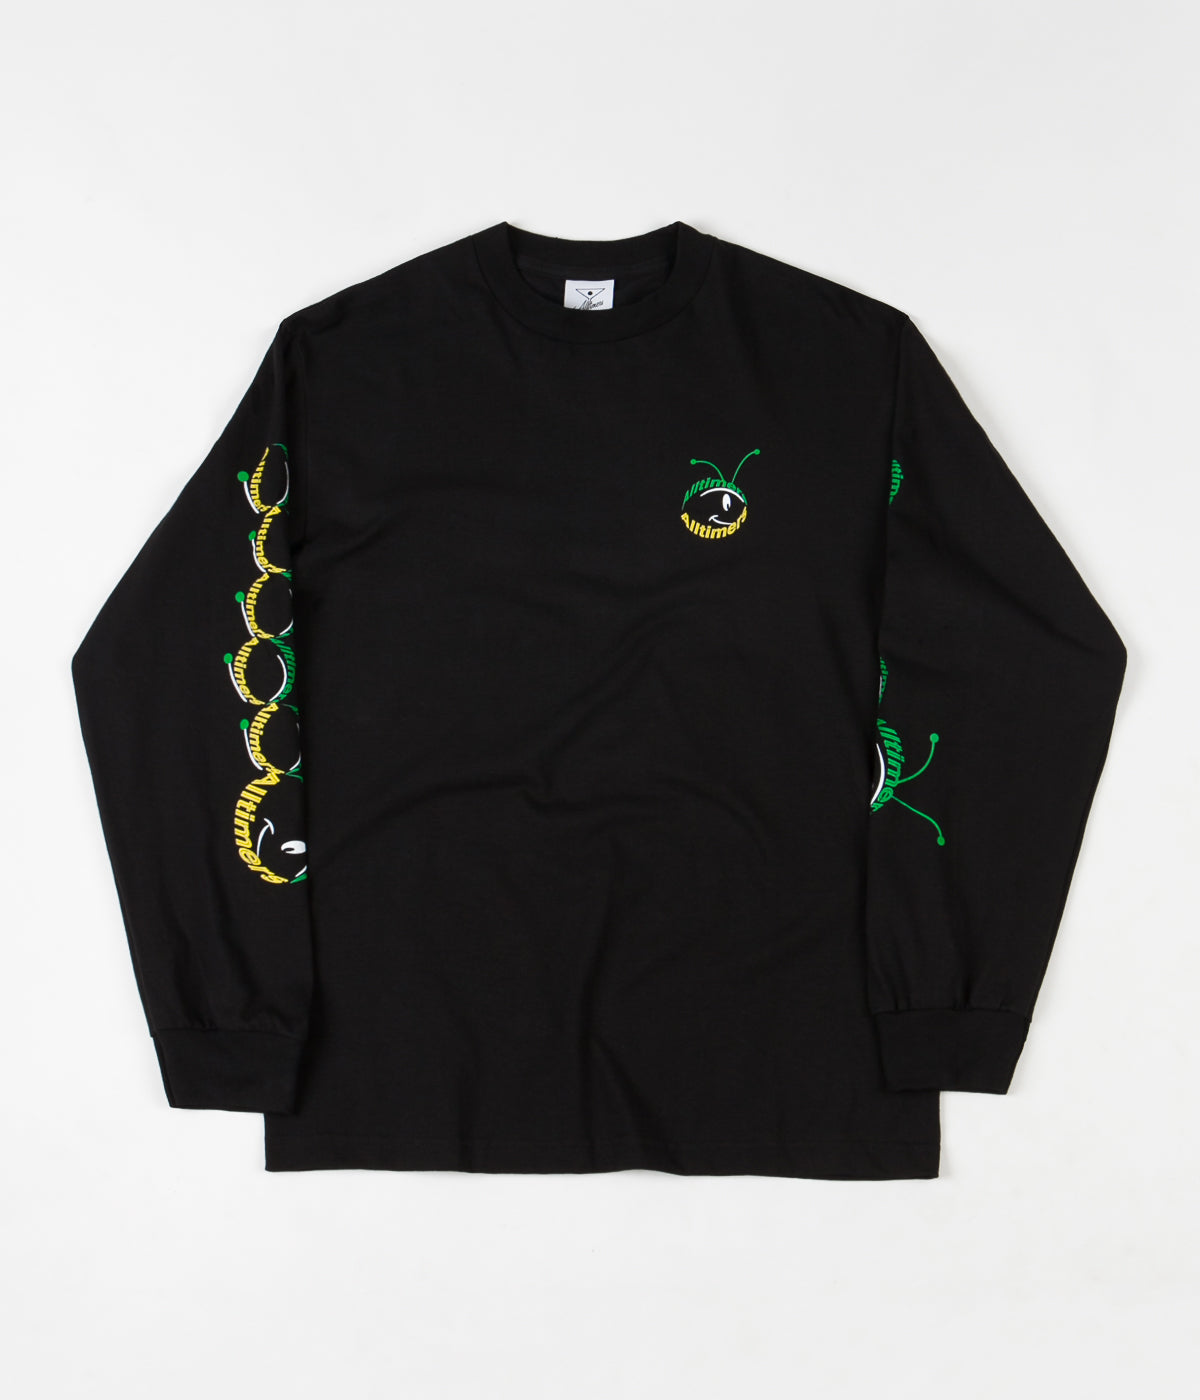 Alltimers Lil Buddy Long Sleeve T-Shirt - Black